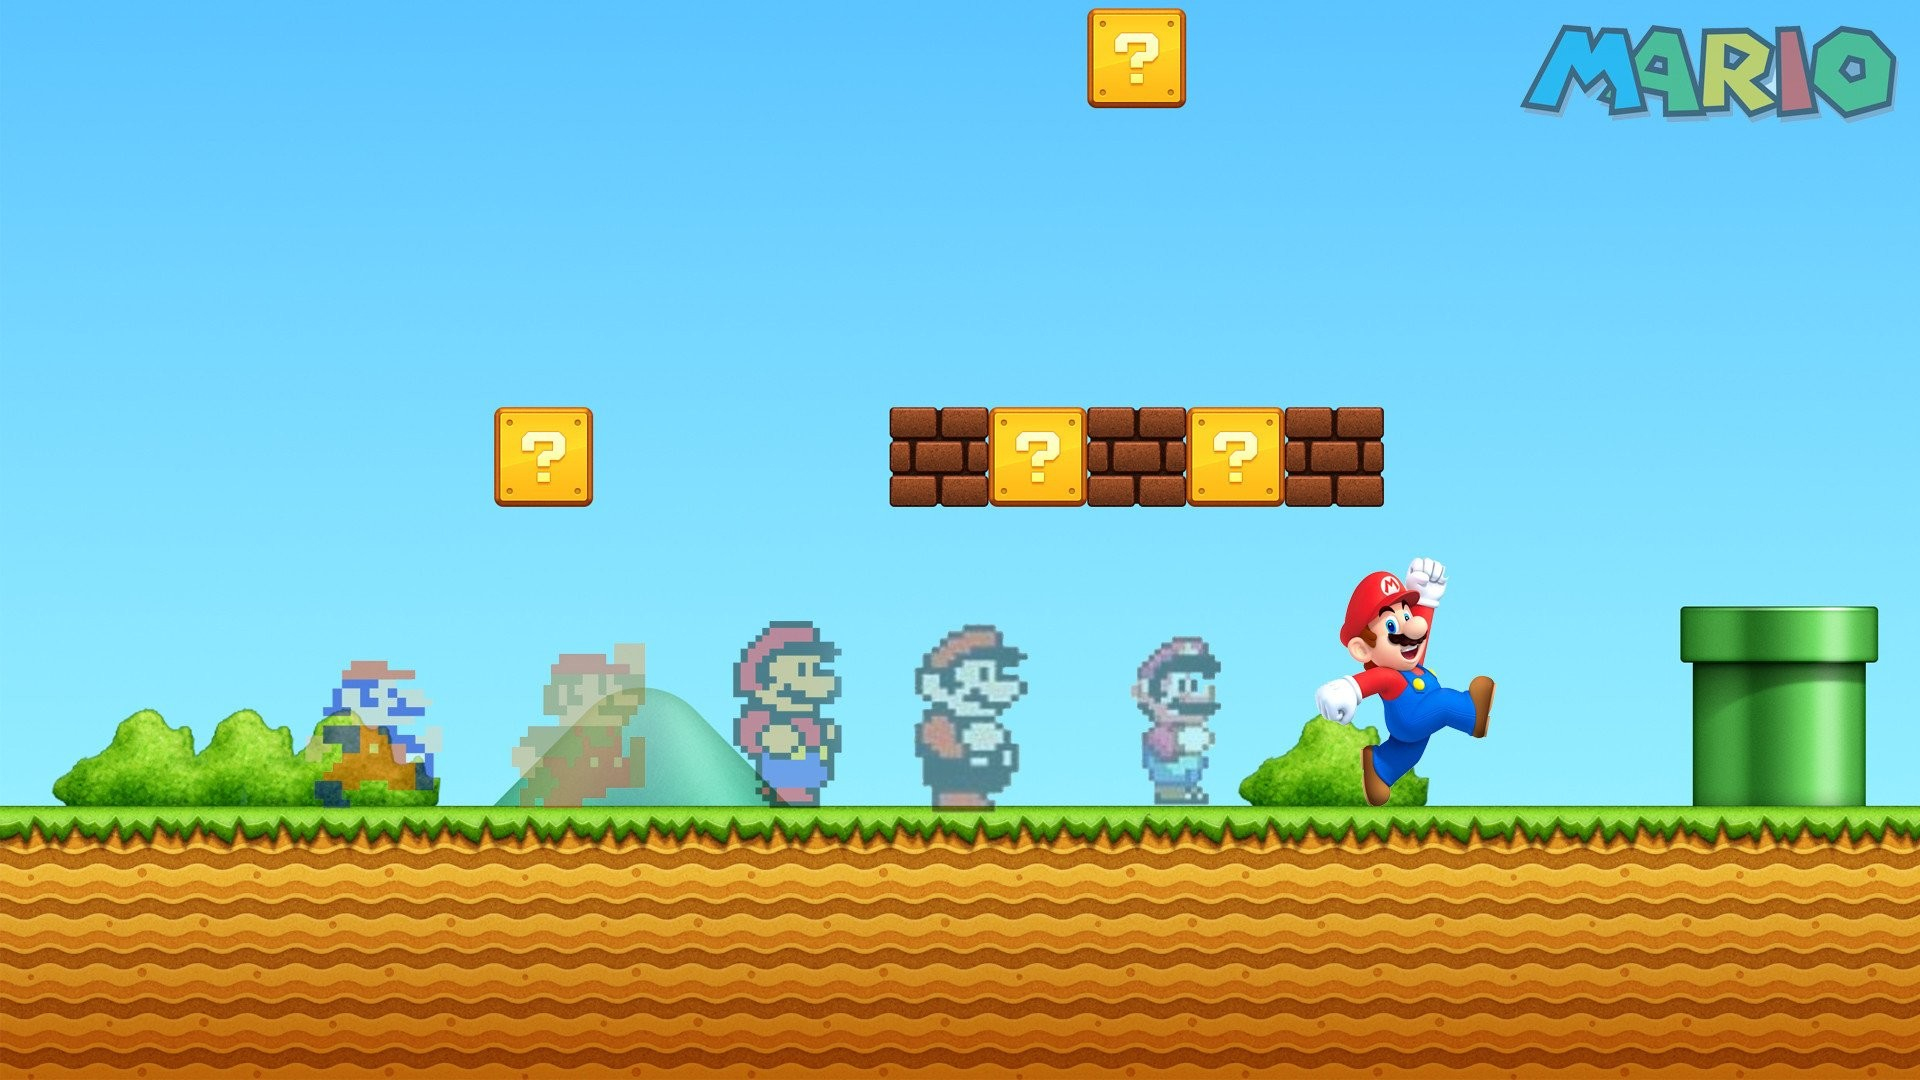 1920x1080 WallpapersWide.com | Mario HD Desktop Wallpapers for Widescreen .